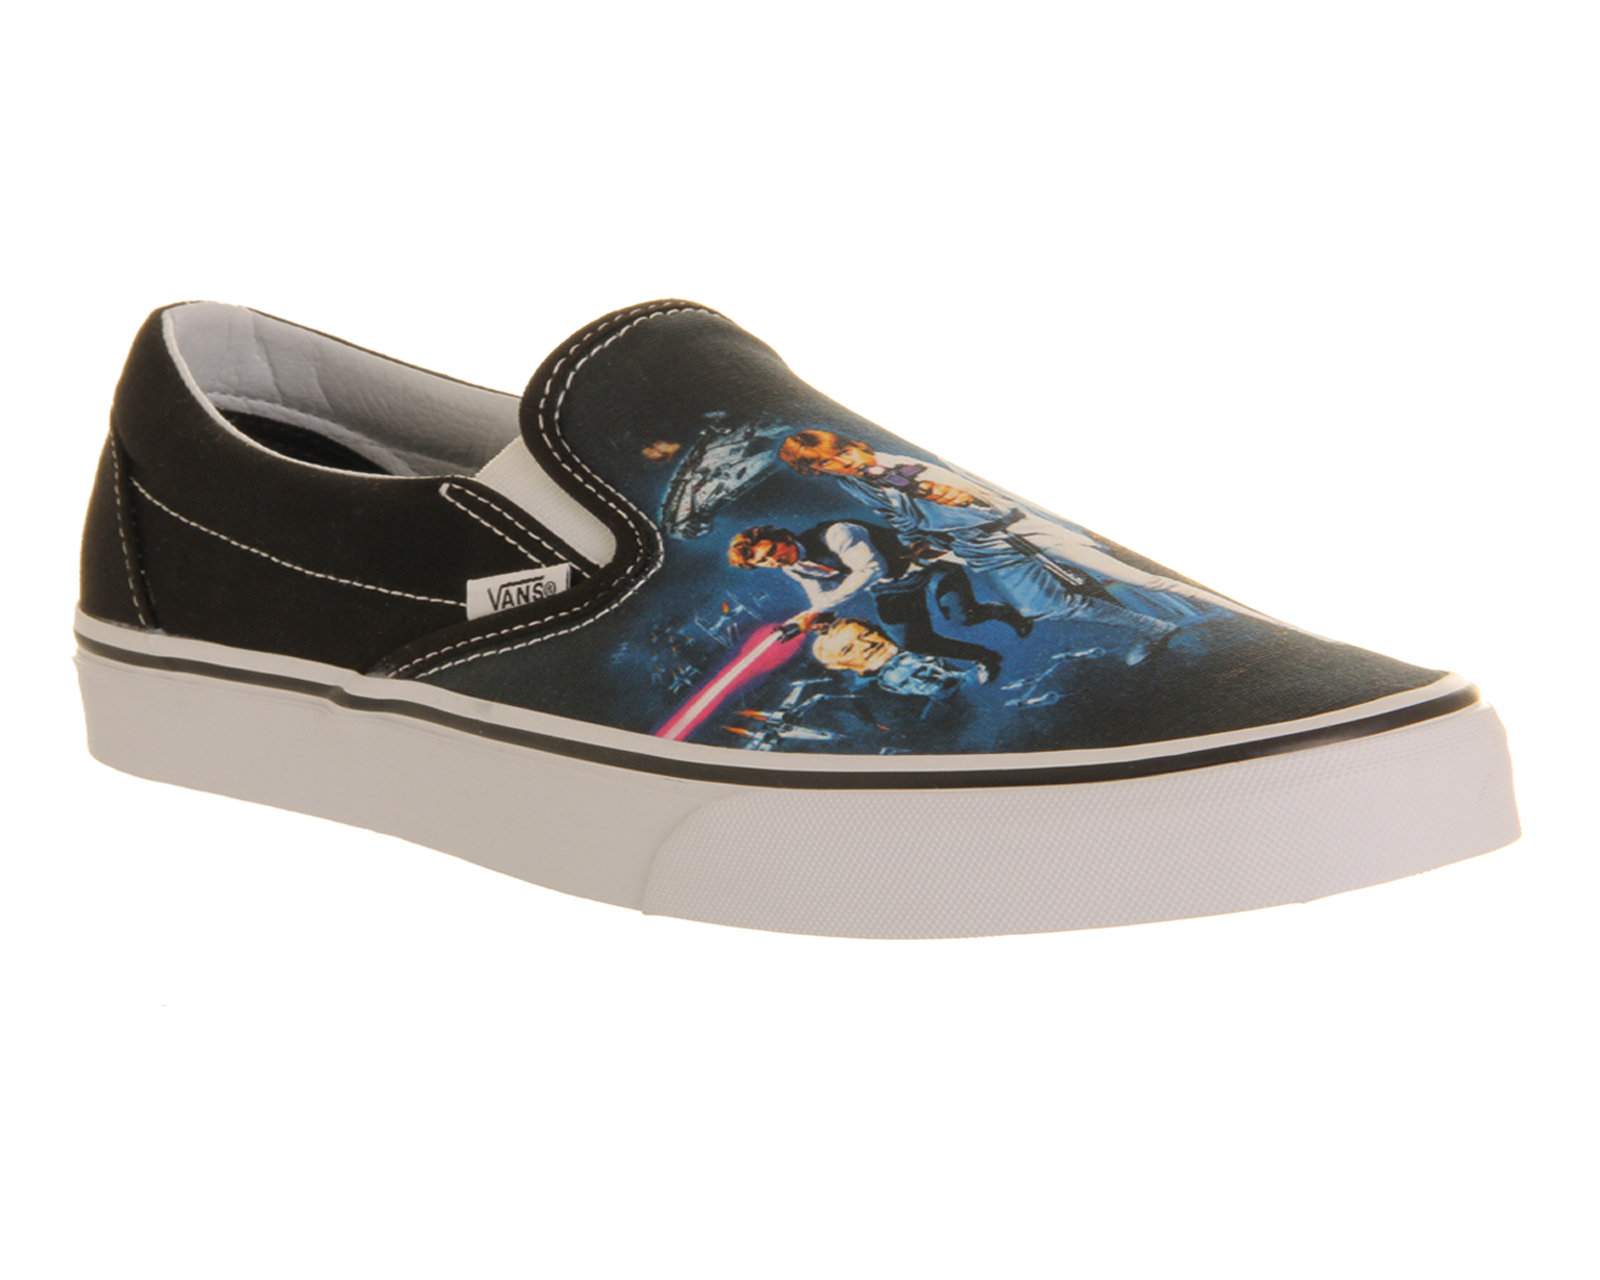 Vans Star Wars Classic Slip On Mens Shoes